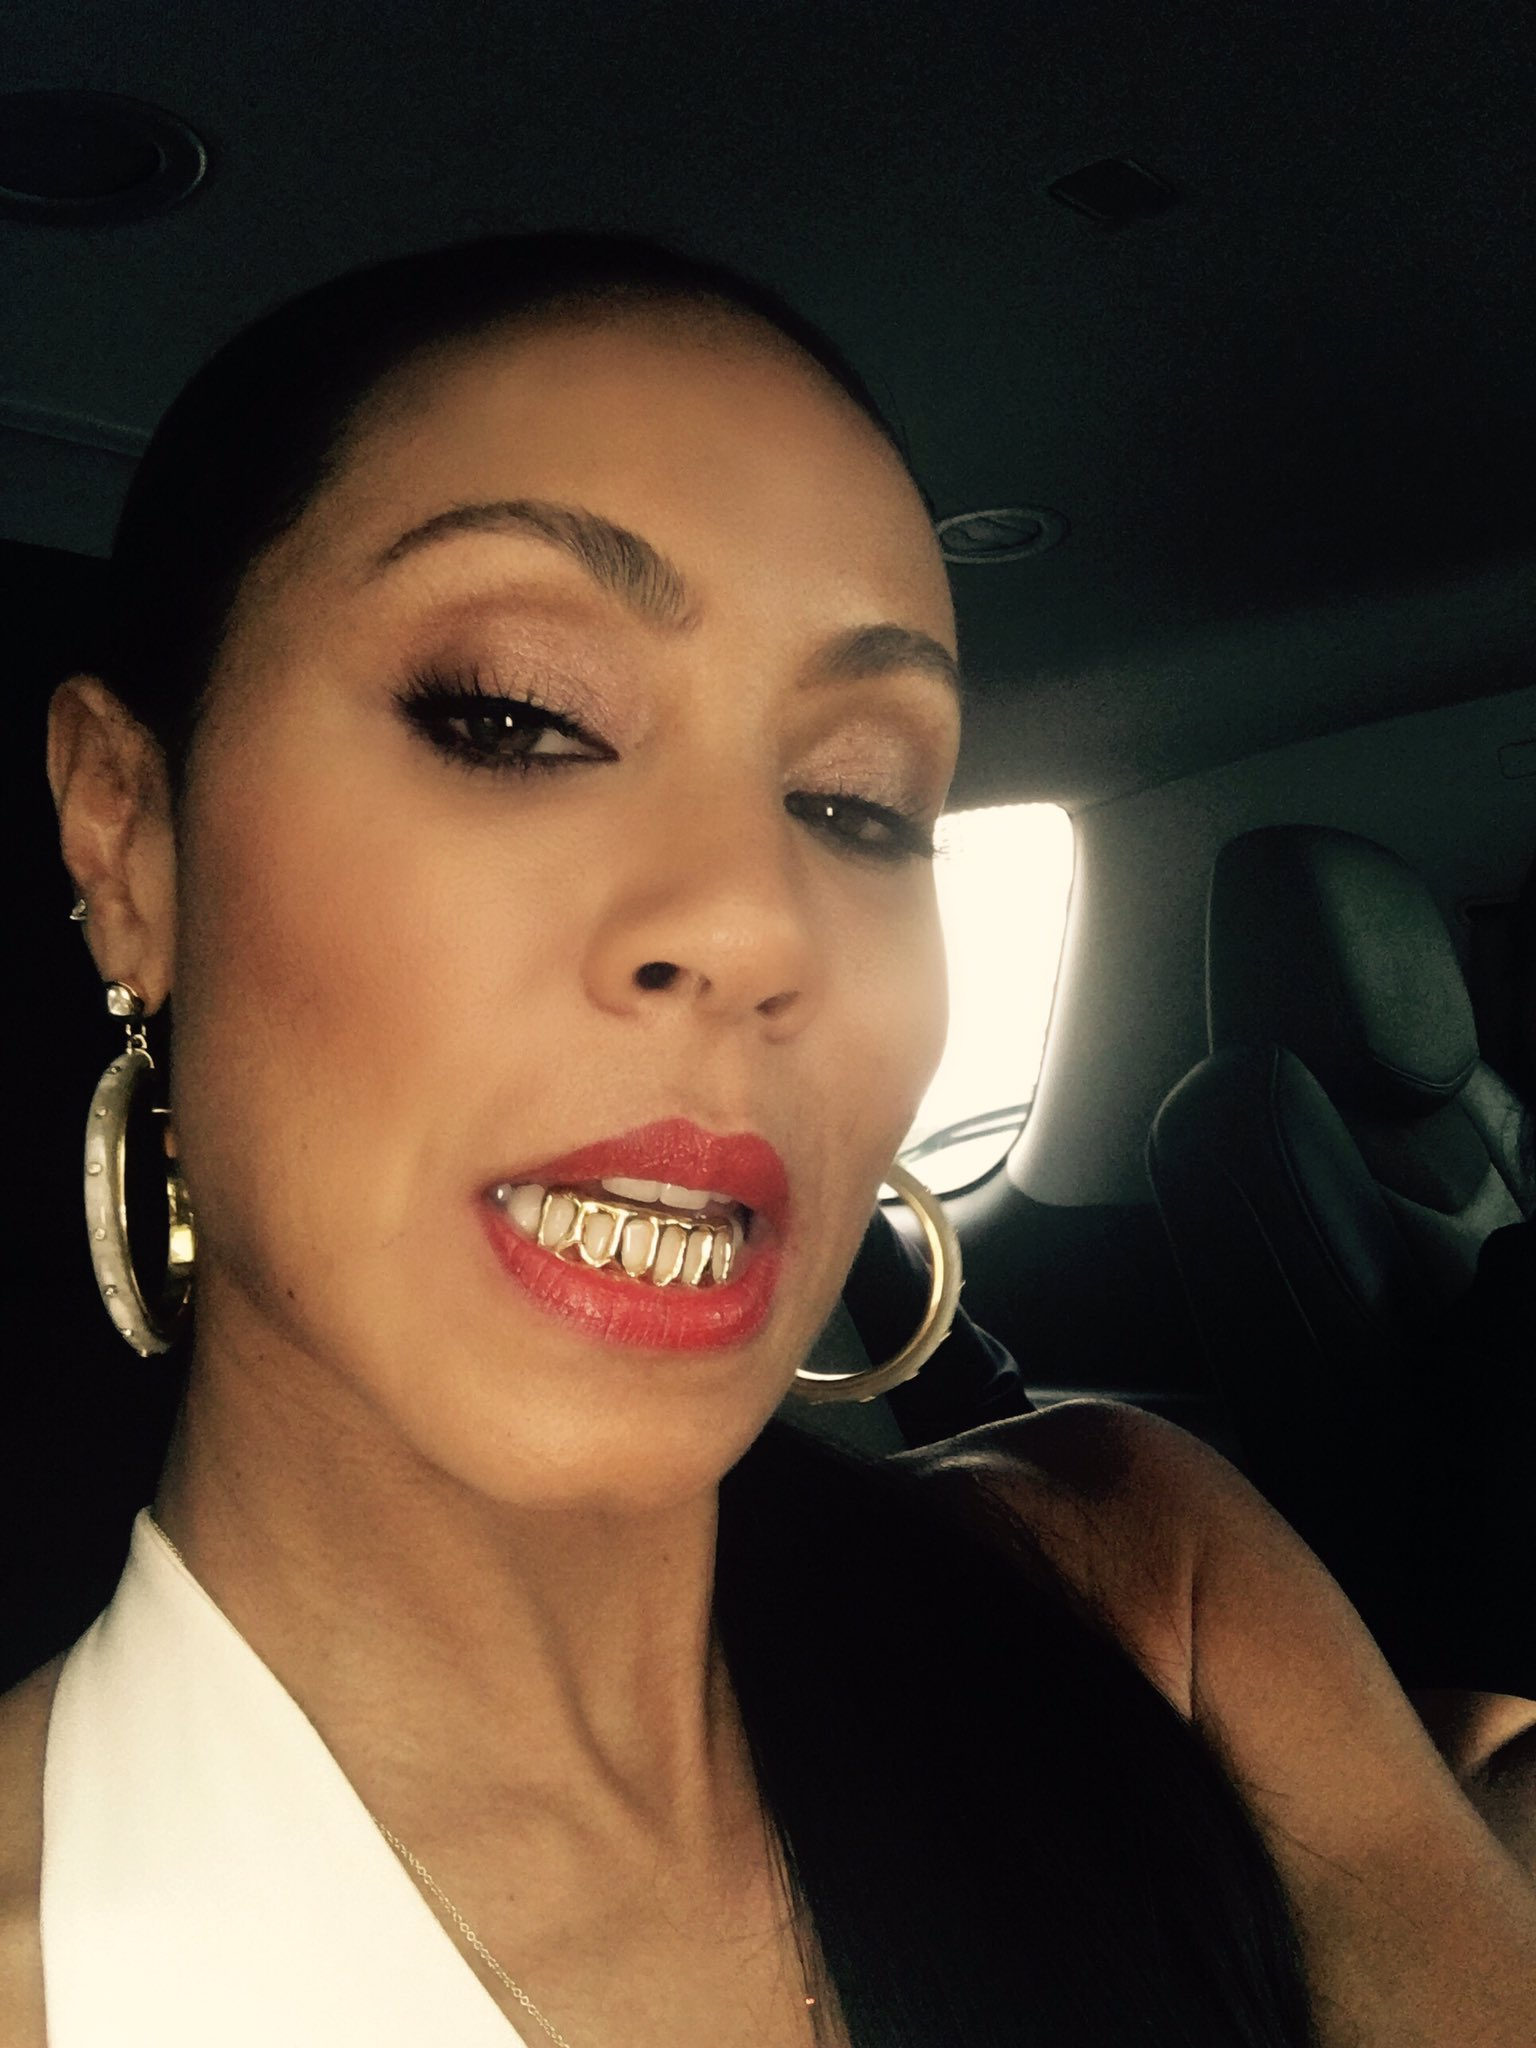 RT @jadapsmith: When your son buys you grillz for your 45th birthday:) https://t.co/Crysr6T3nf